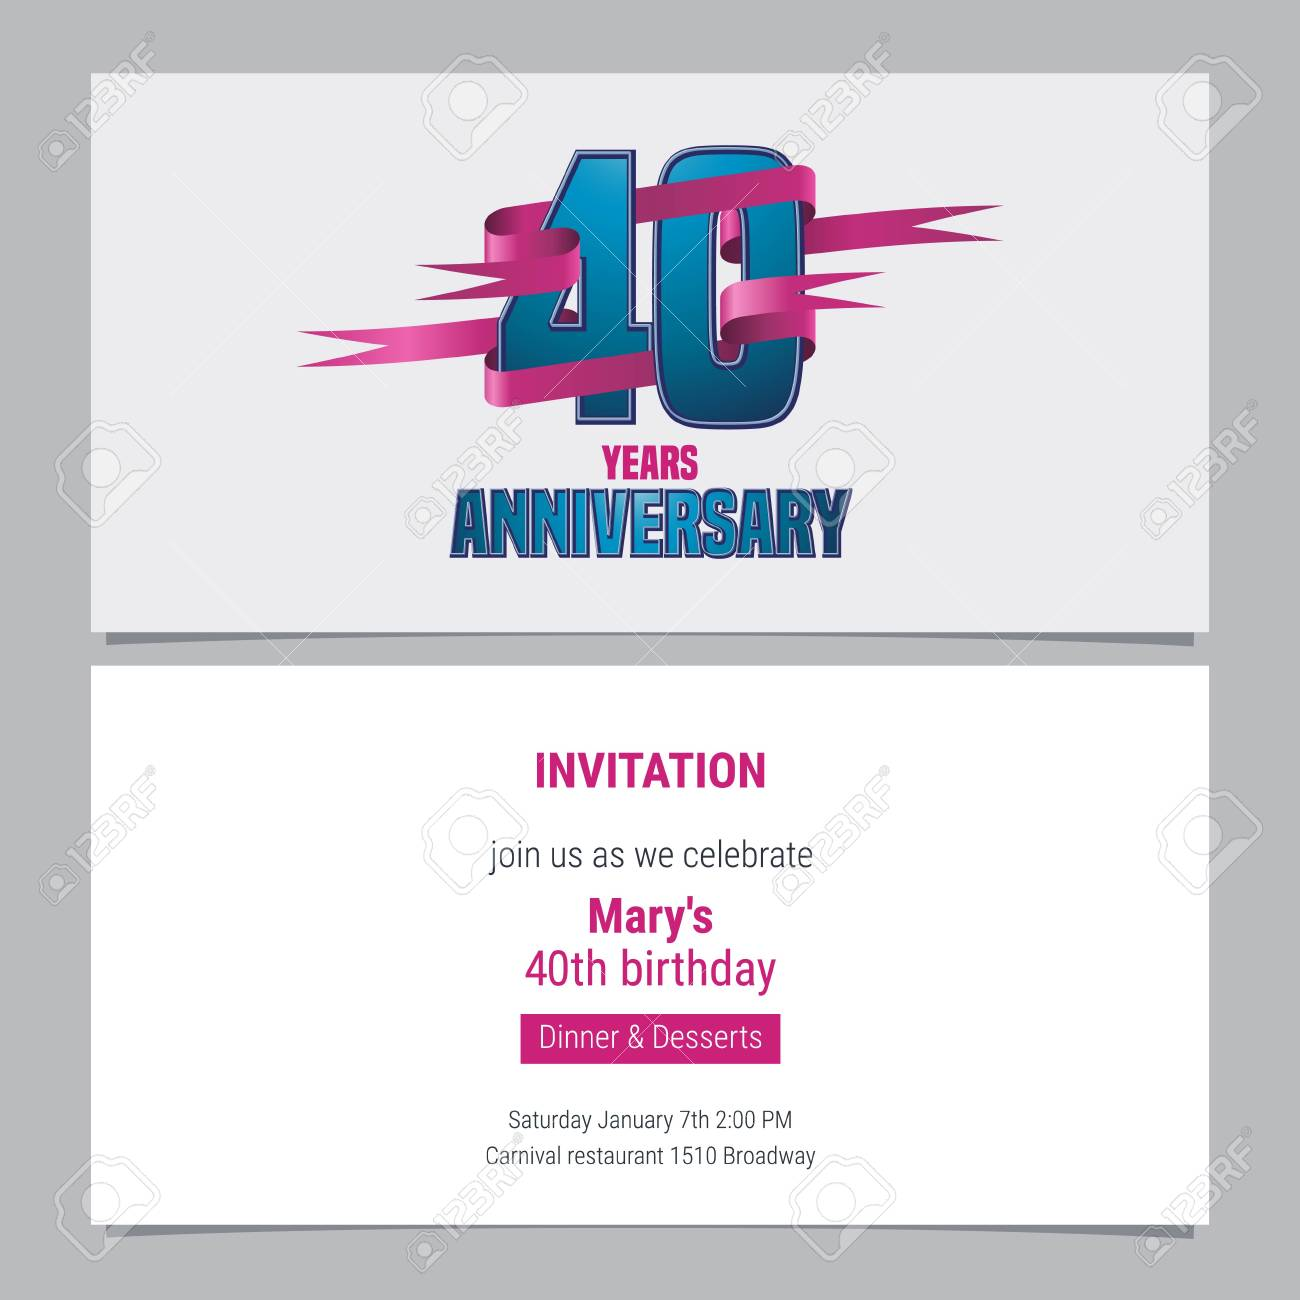 40 Years Anniversary Invitation To Celebration Vector Illustration Design Element With Text For 40th Birthday